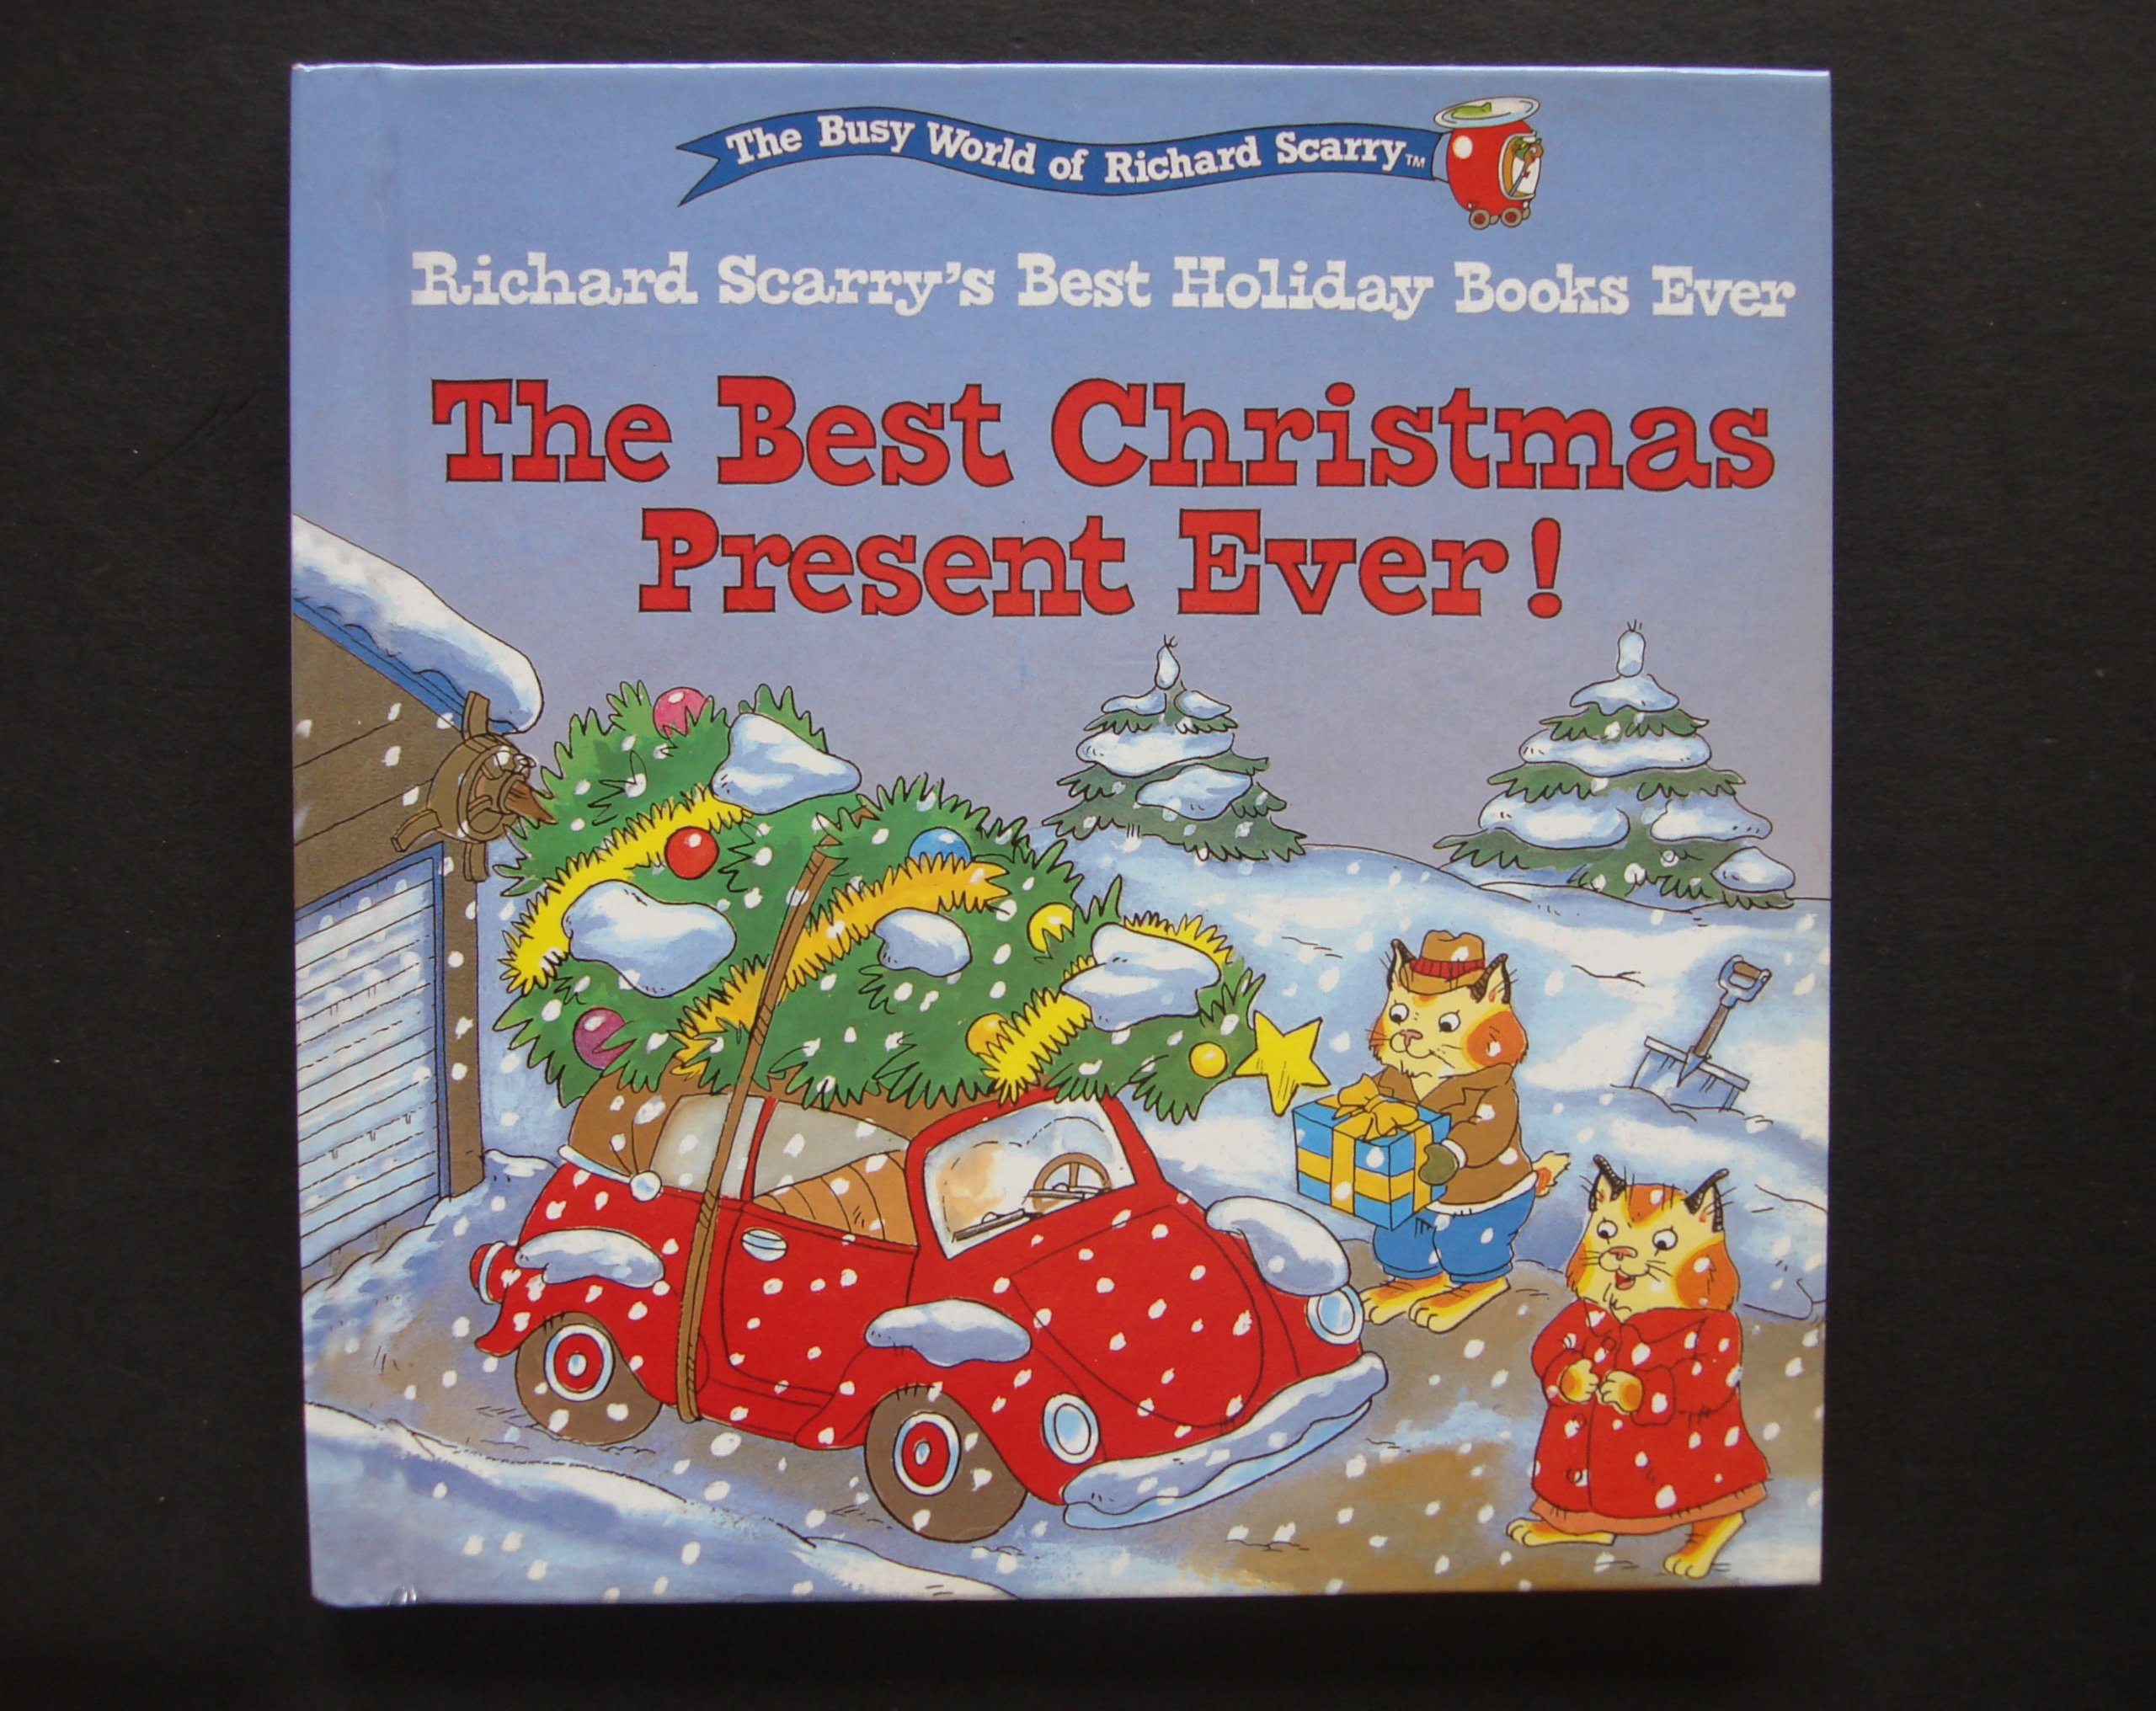 best christmas present ever richard scarry amazoncom books - Best Christmas Present Ever